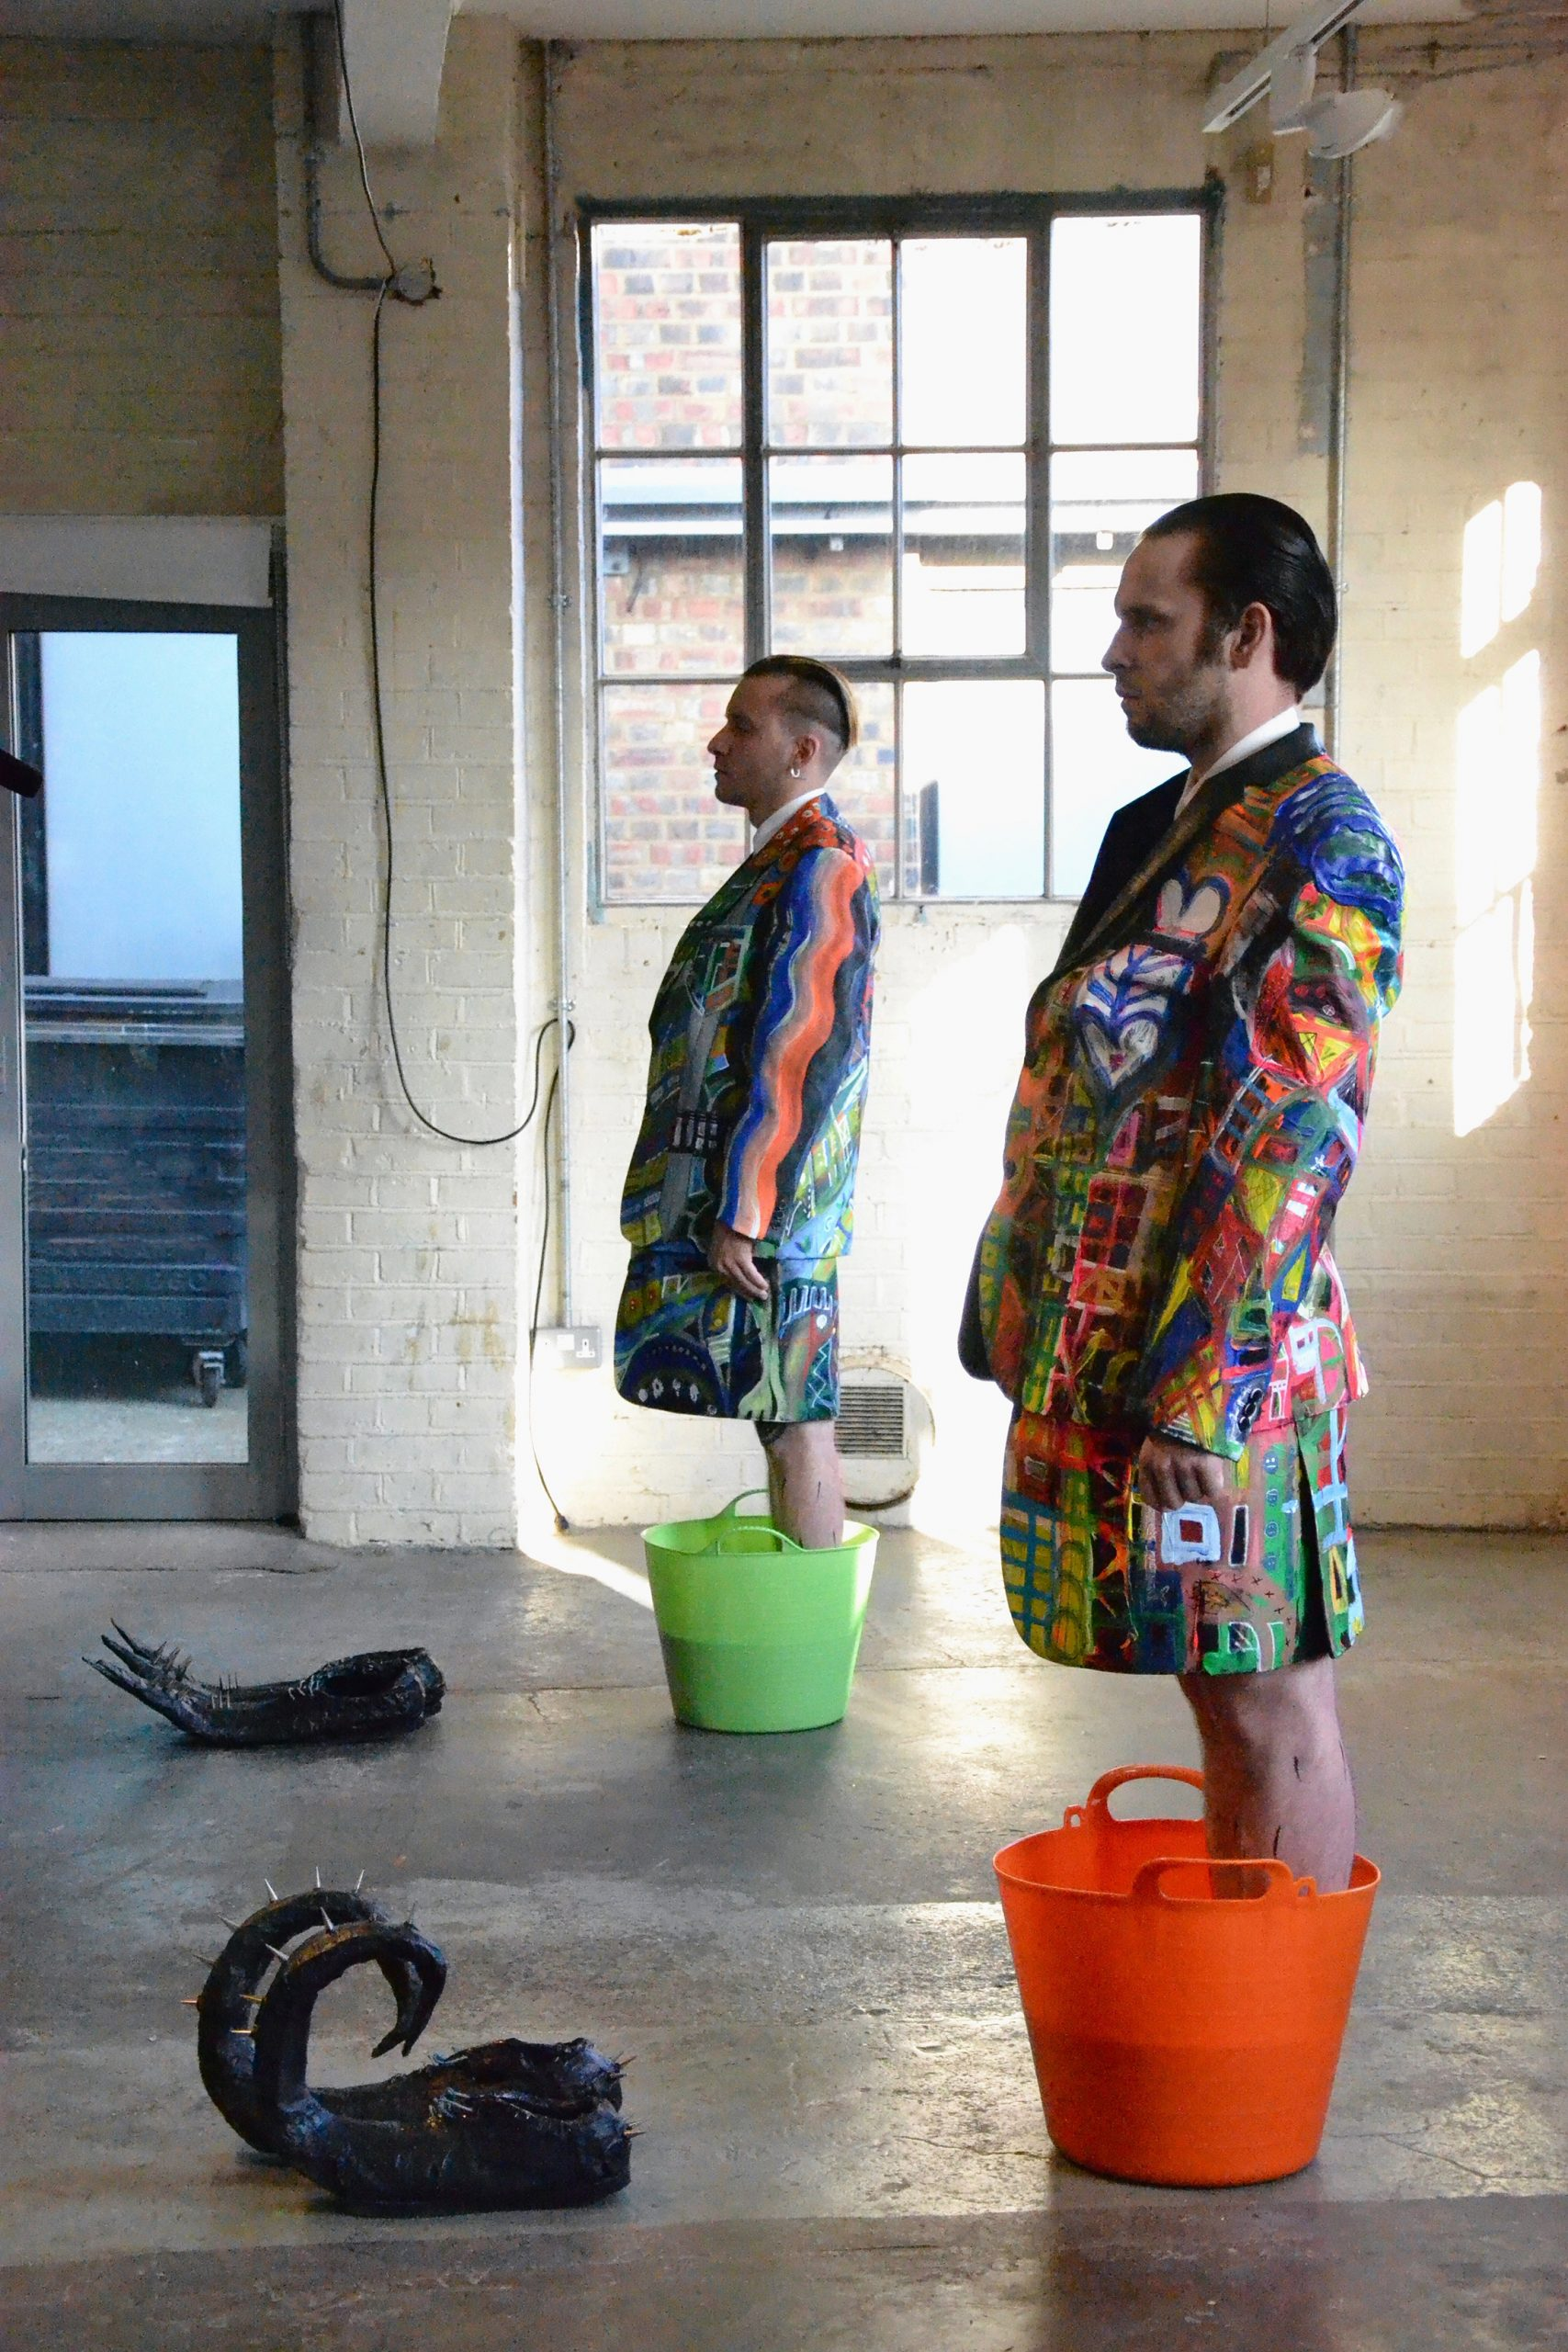 Two male identified people standing inside buckets full of fluorescent paint, in front of them two pairs sculptural shoes known as unidentified performing objects by Luca Bosani